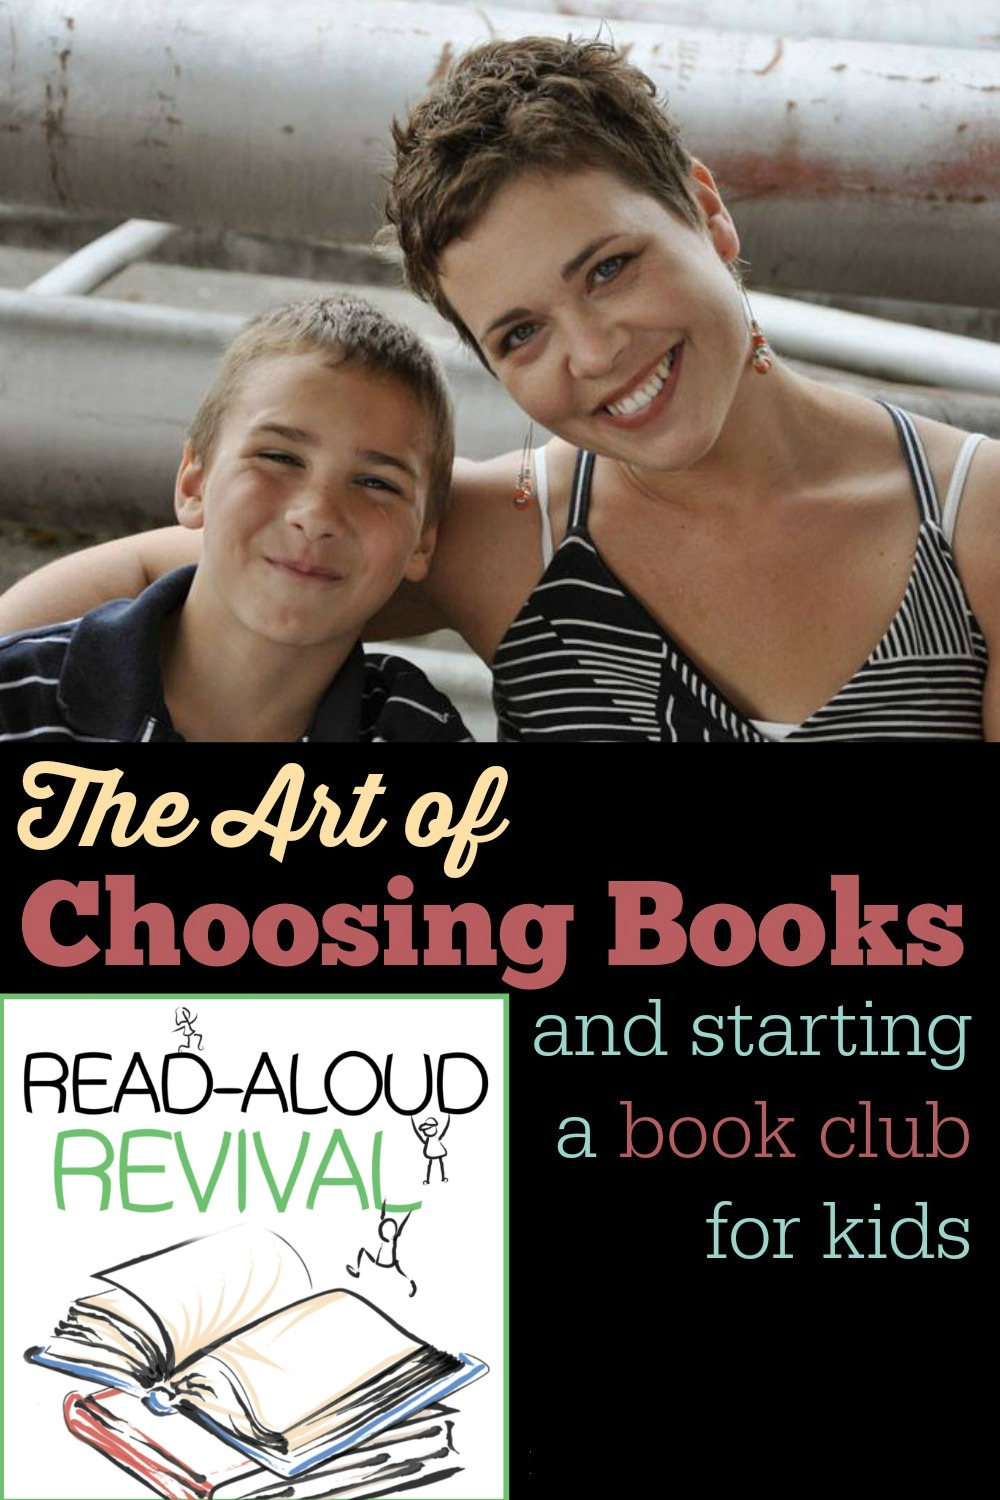 Click on this picture to go right to Episode 10 of the Read Aloud Revival Podcast.